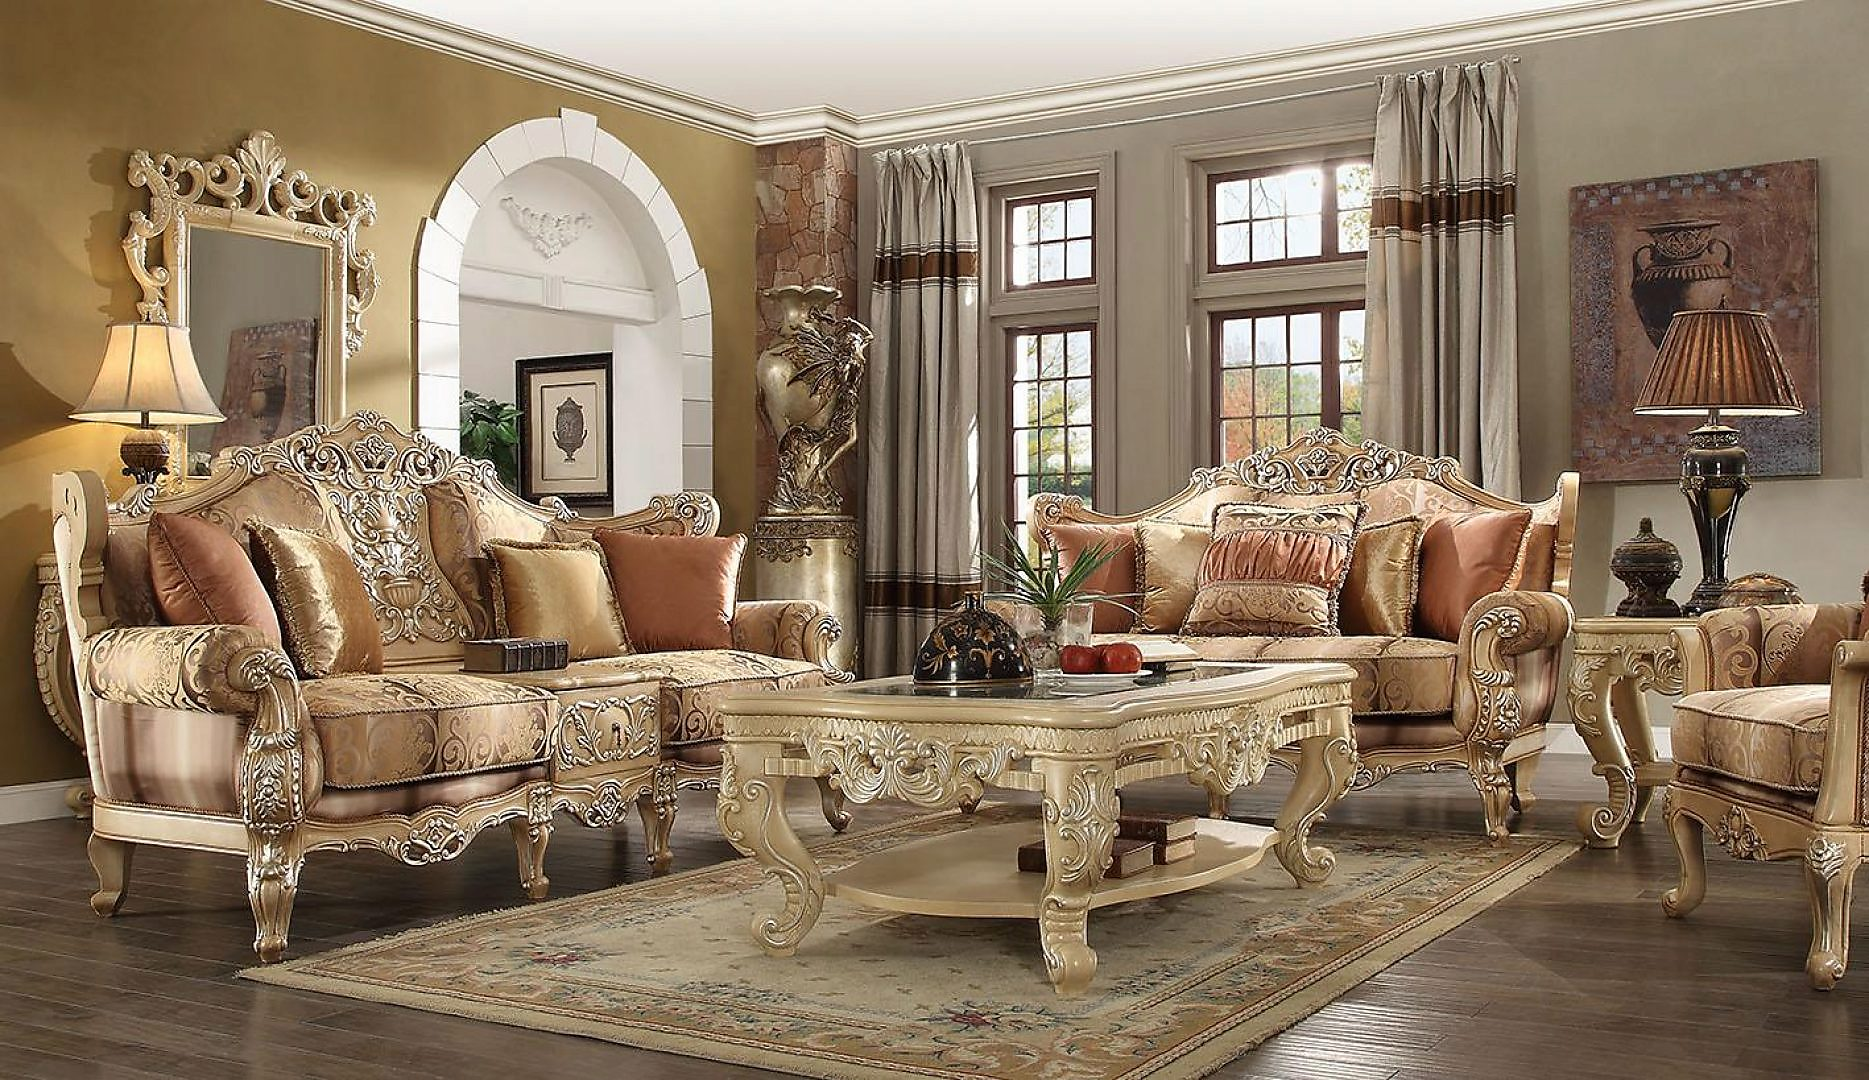 Traditional HD-1633 Sectional Sofa Set 7Pcs by Homey Design